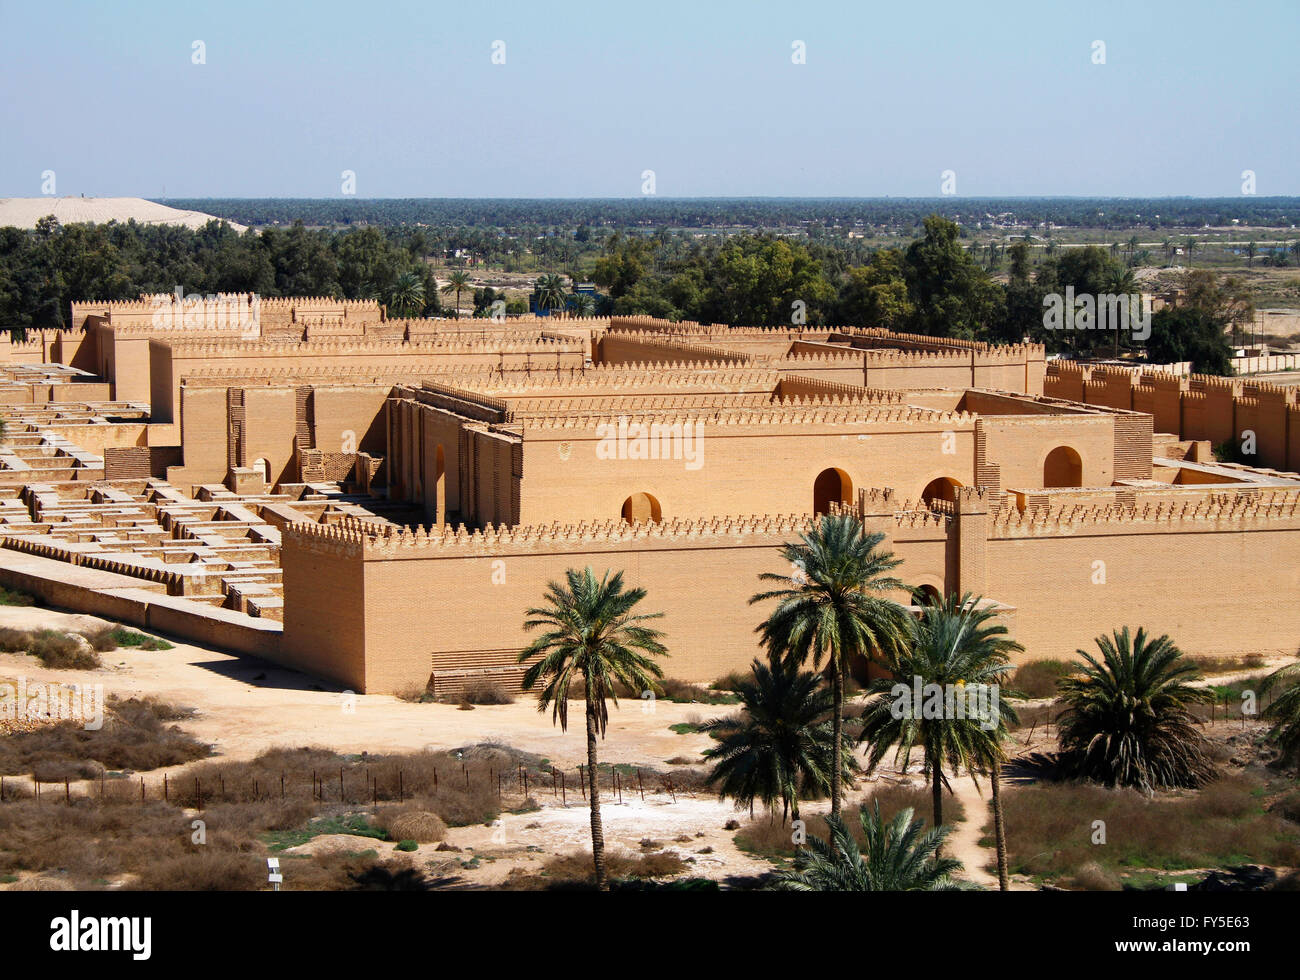 Restored ruins of ancient Babylon, Iraq. - Stock Image